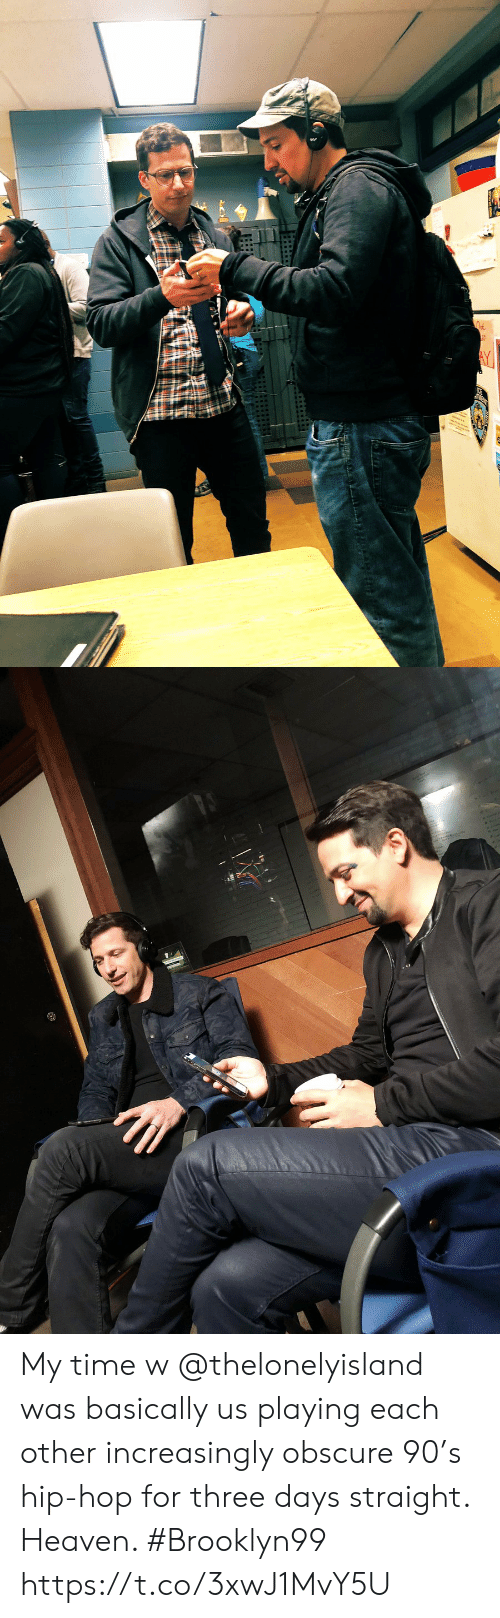 obscure: My time w @thelonelyisland was basically us playing each other increasingly obscure 90's hip-hop for three days straight. Heaven. #Brooklyn99 https://t.co/3xwJ1MvY5U